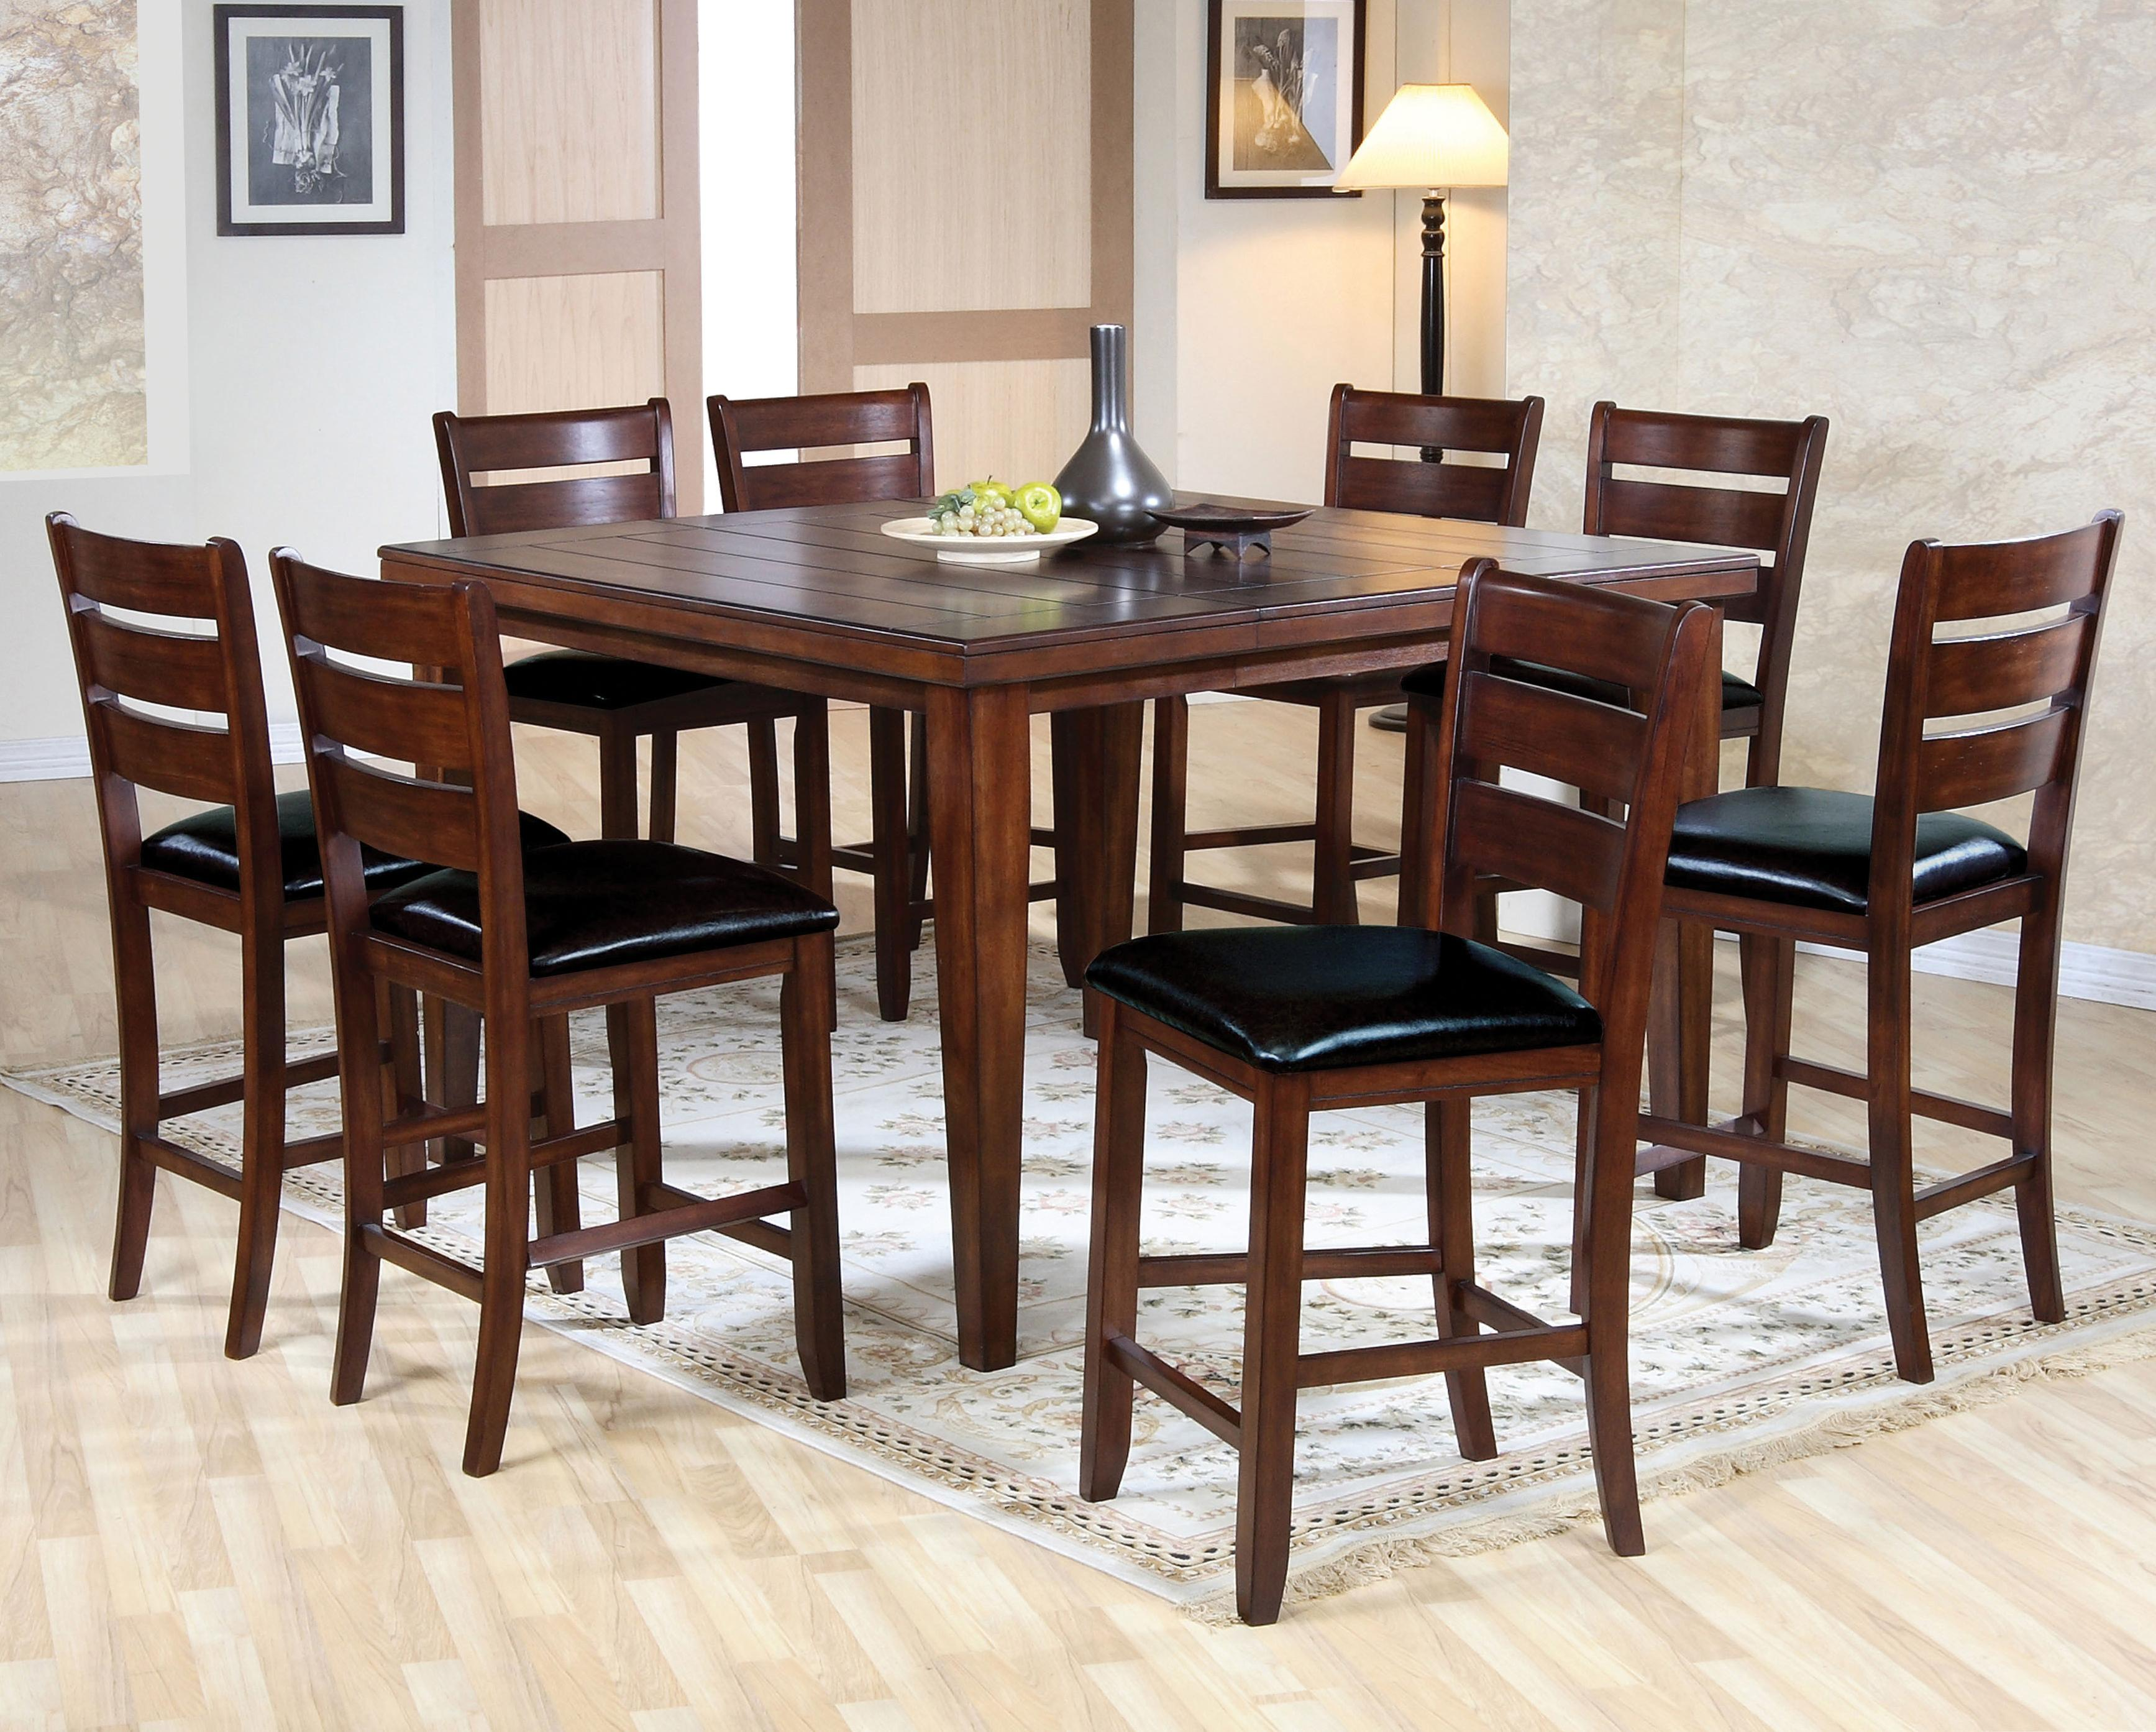 00680 Counter Height Dining Set by Acme Furniture at Carolina Direct